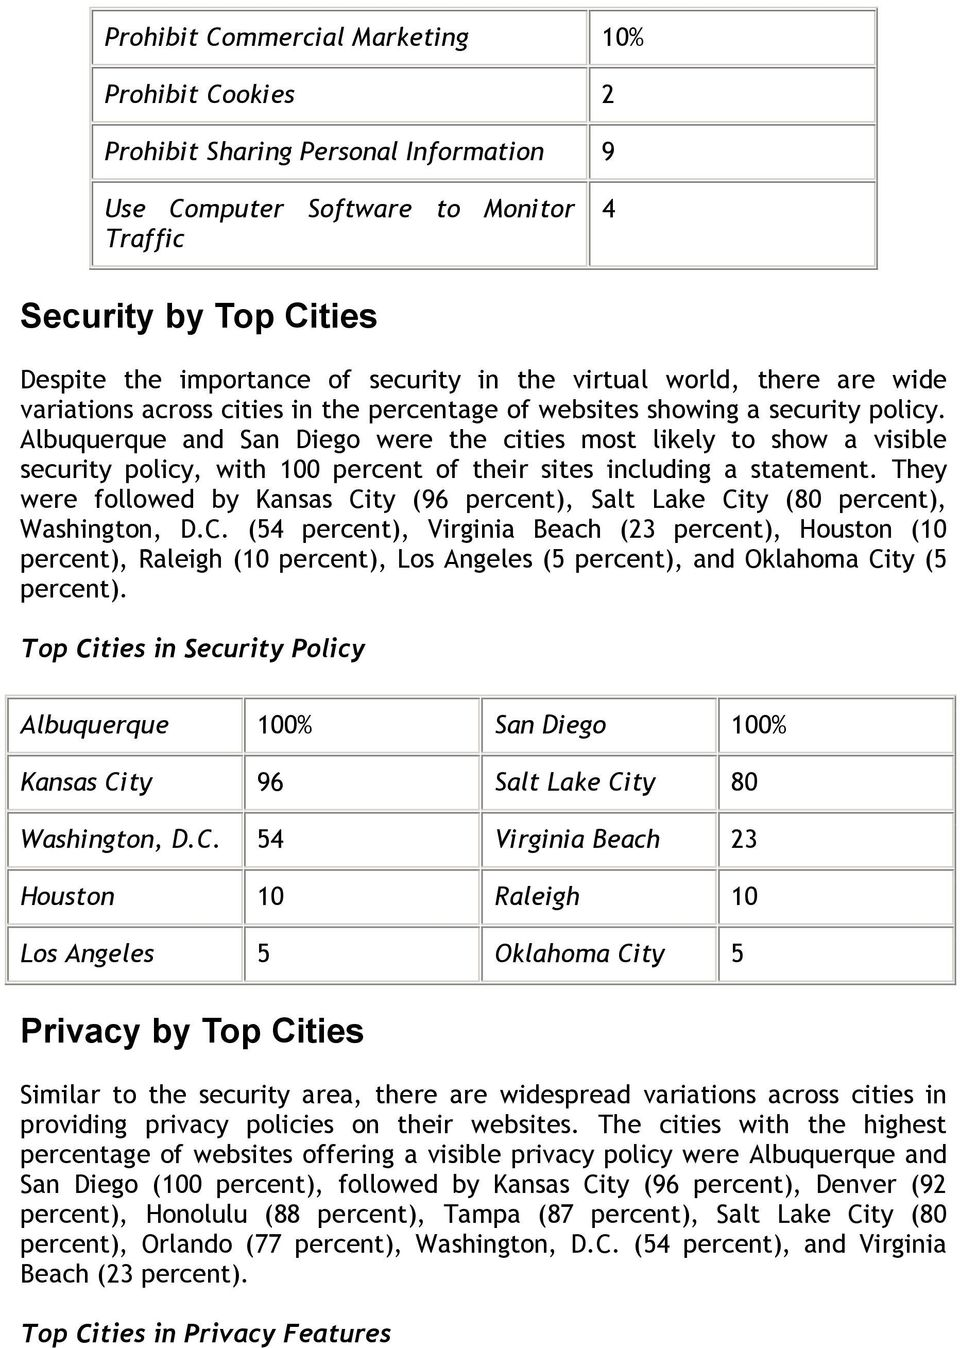 Albuquerque and San Diego were the cities most likely to show a visible security policy, with 100 percent of their sites including a statement.